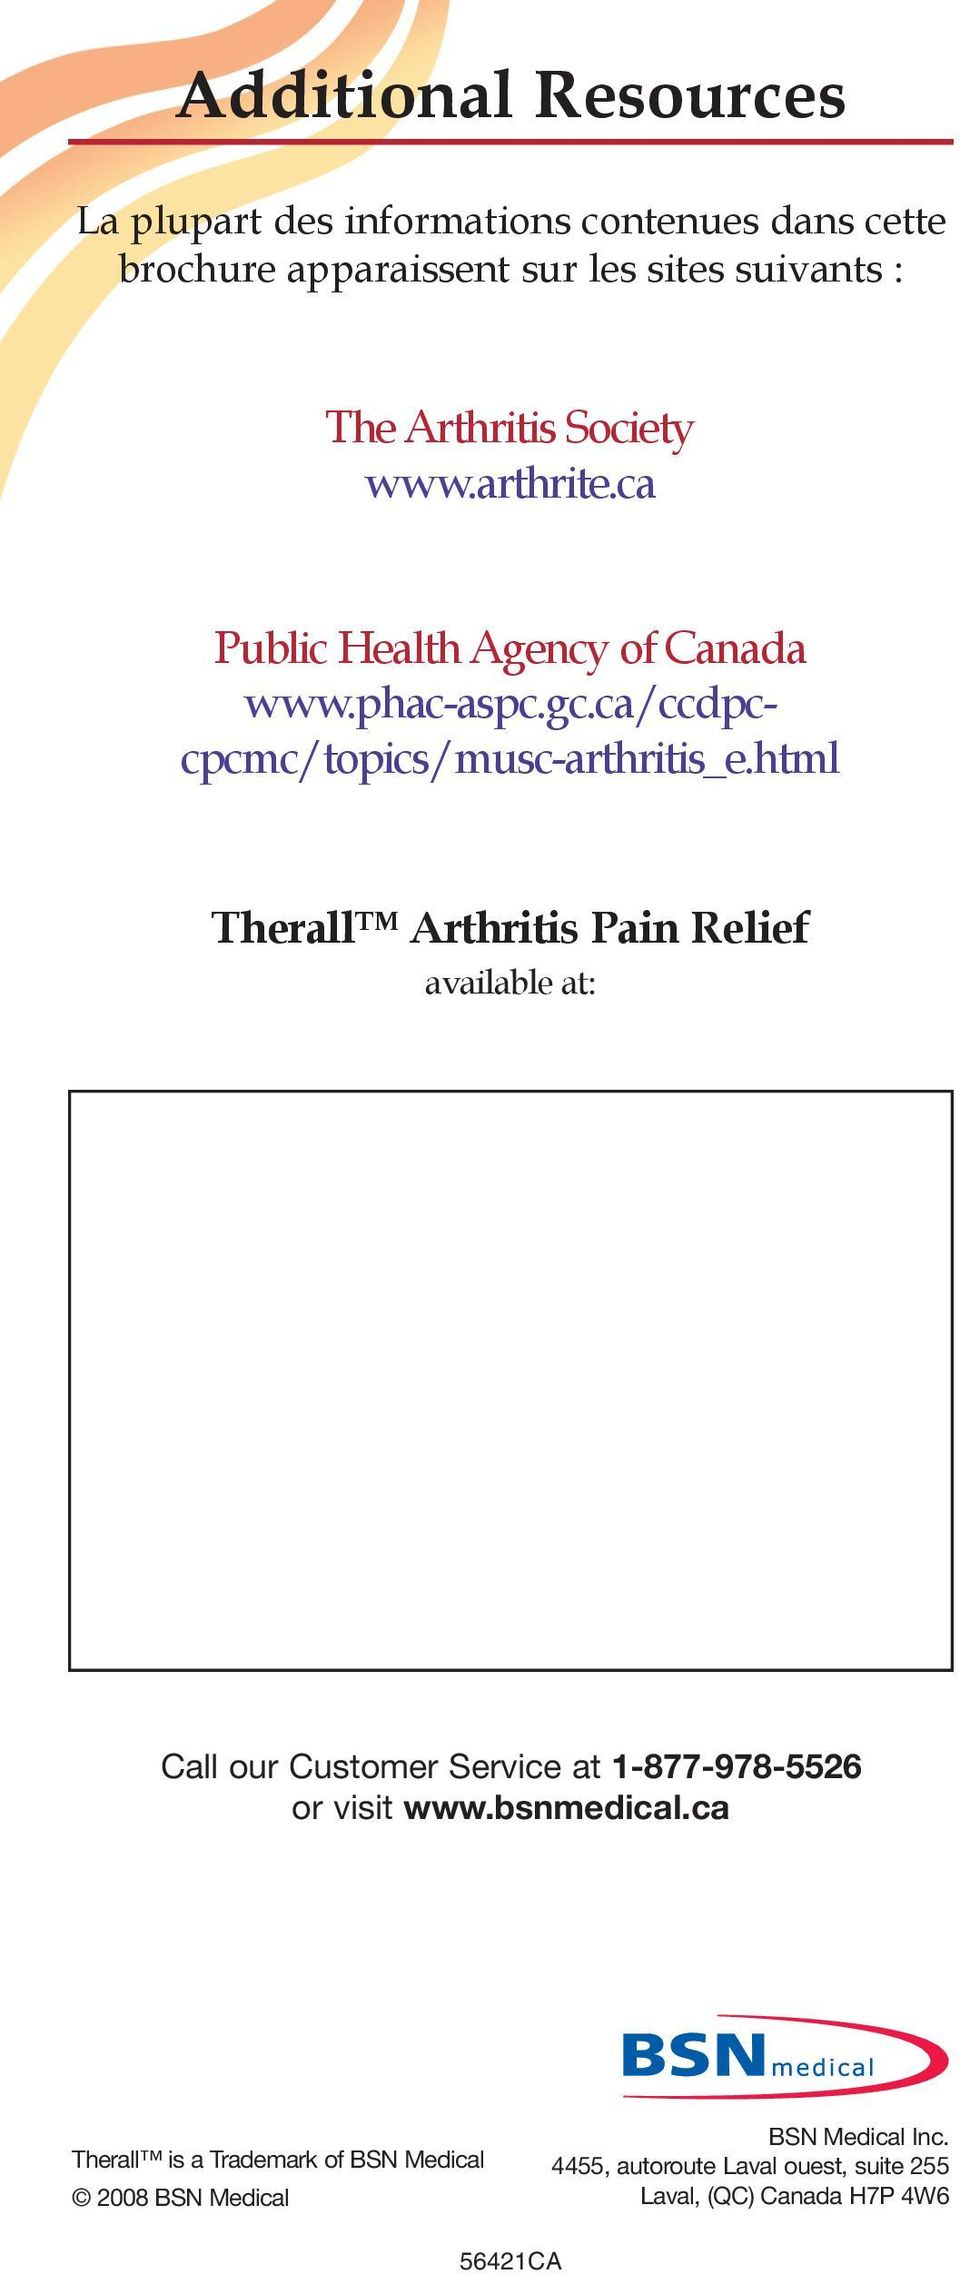 html Therall Arthritis Pain Relief available at: Call our Customer Service at 1-877-978-5526 or visit www.bsnmedical.